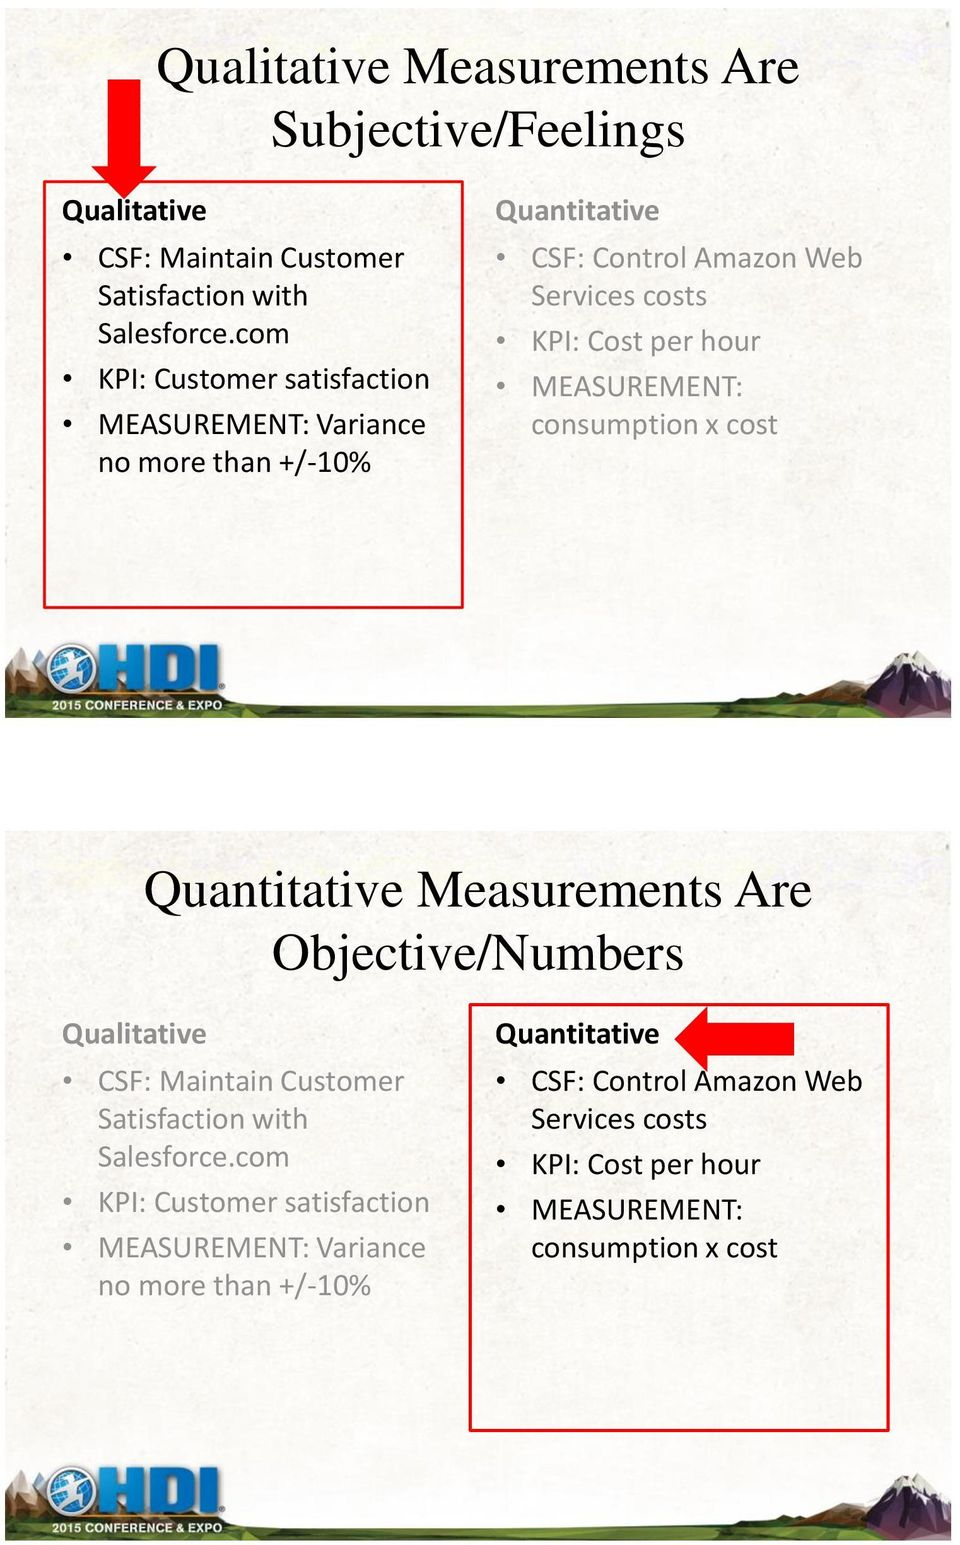 MEASUREMENT: consumption x cost Quantitative Measurements Are Objective/Numbers Qualitative CSF: Maintain Customer Satisfaction with Salesforce.